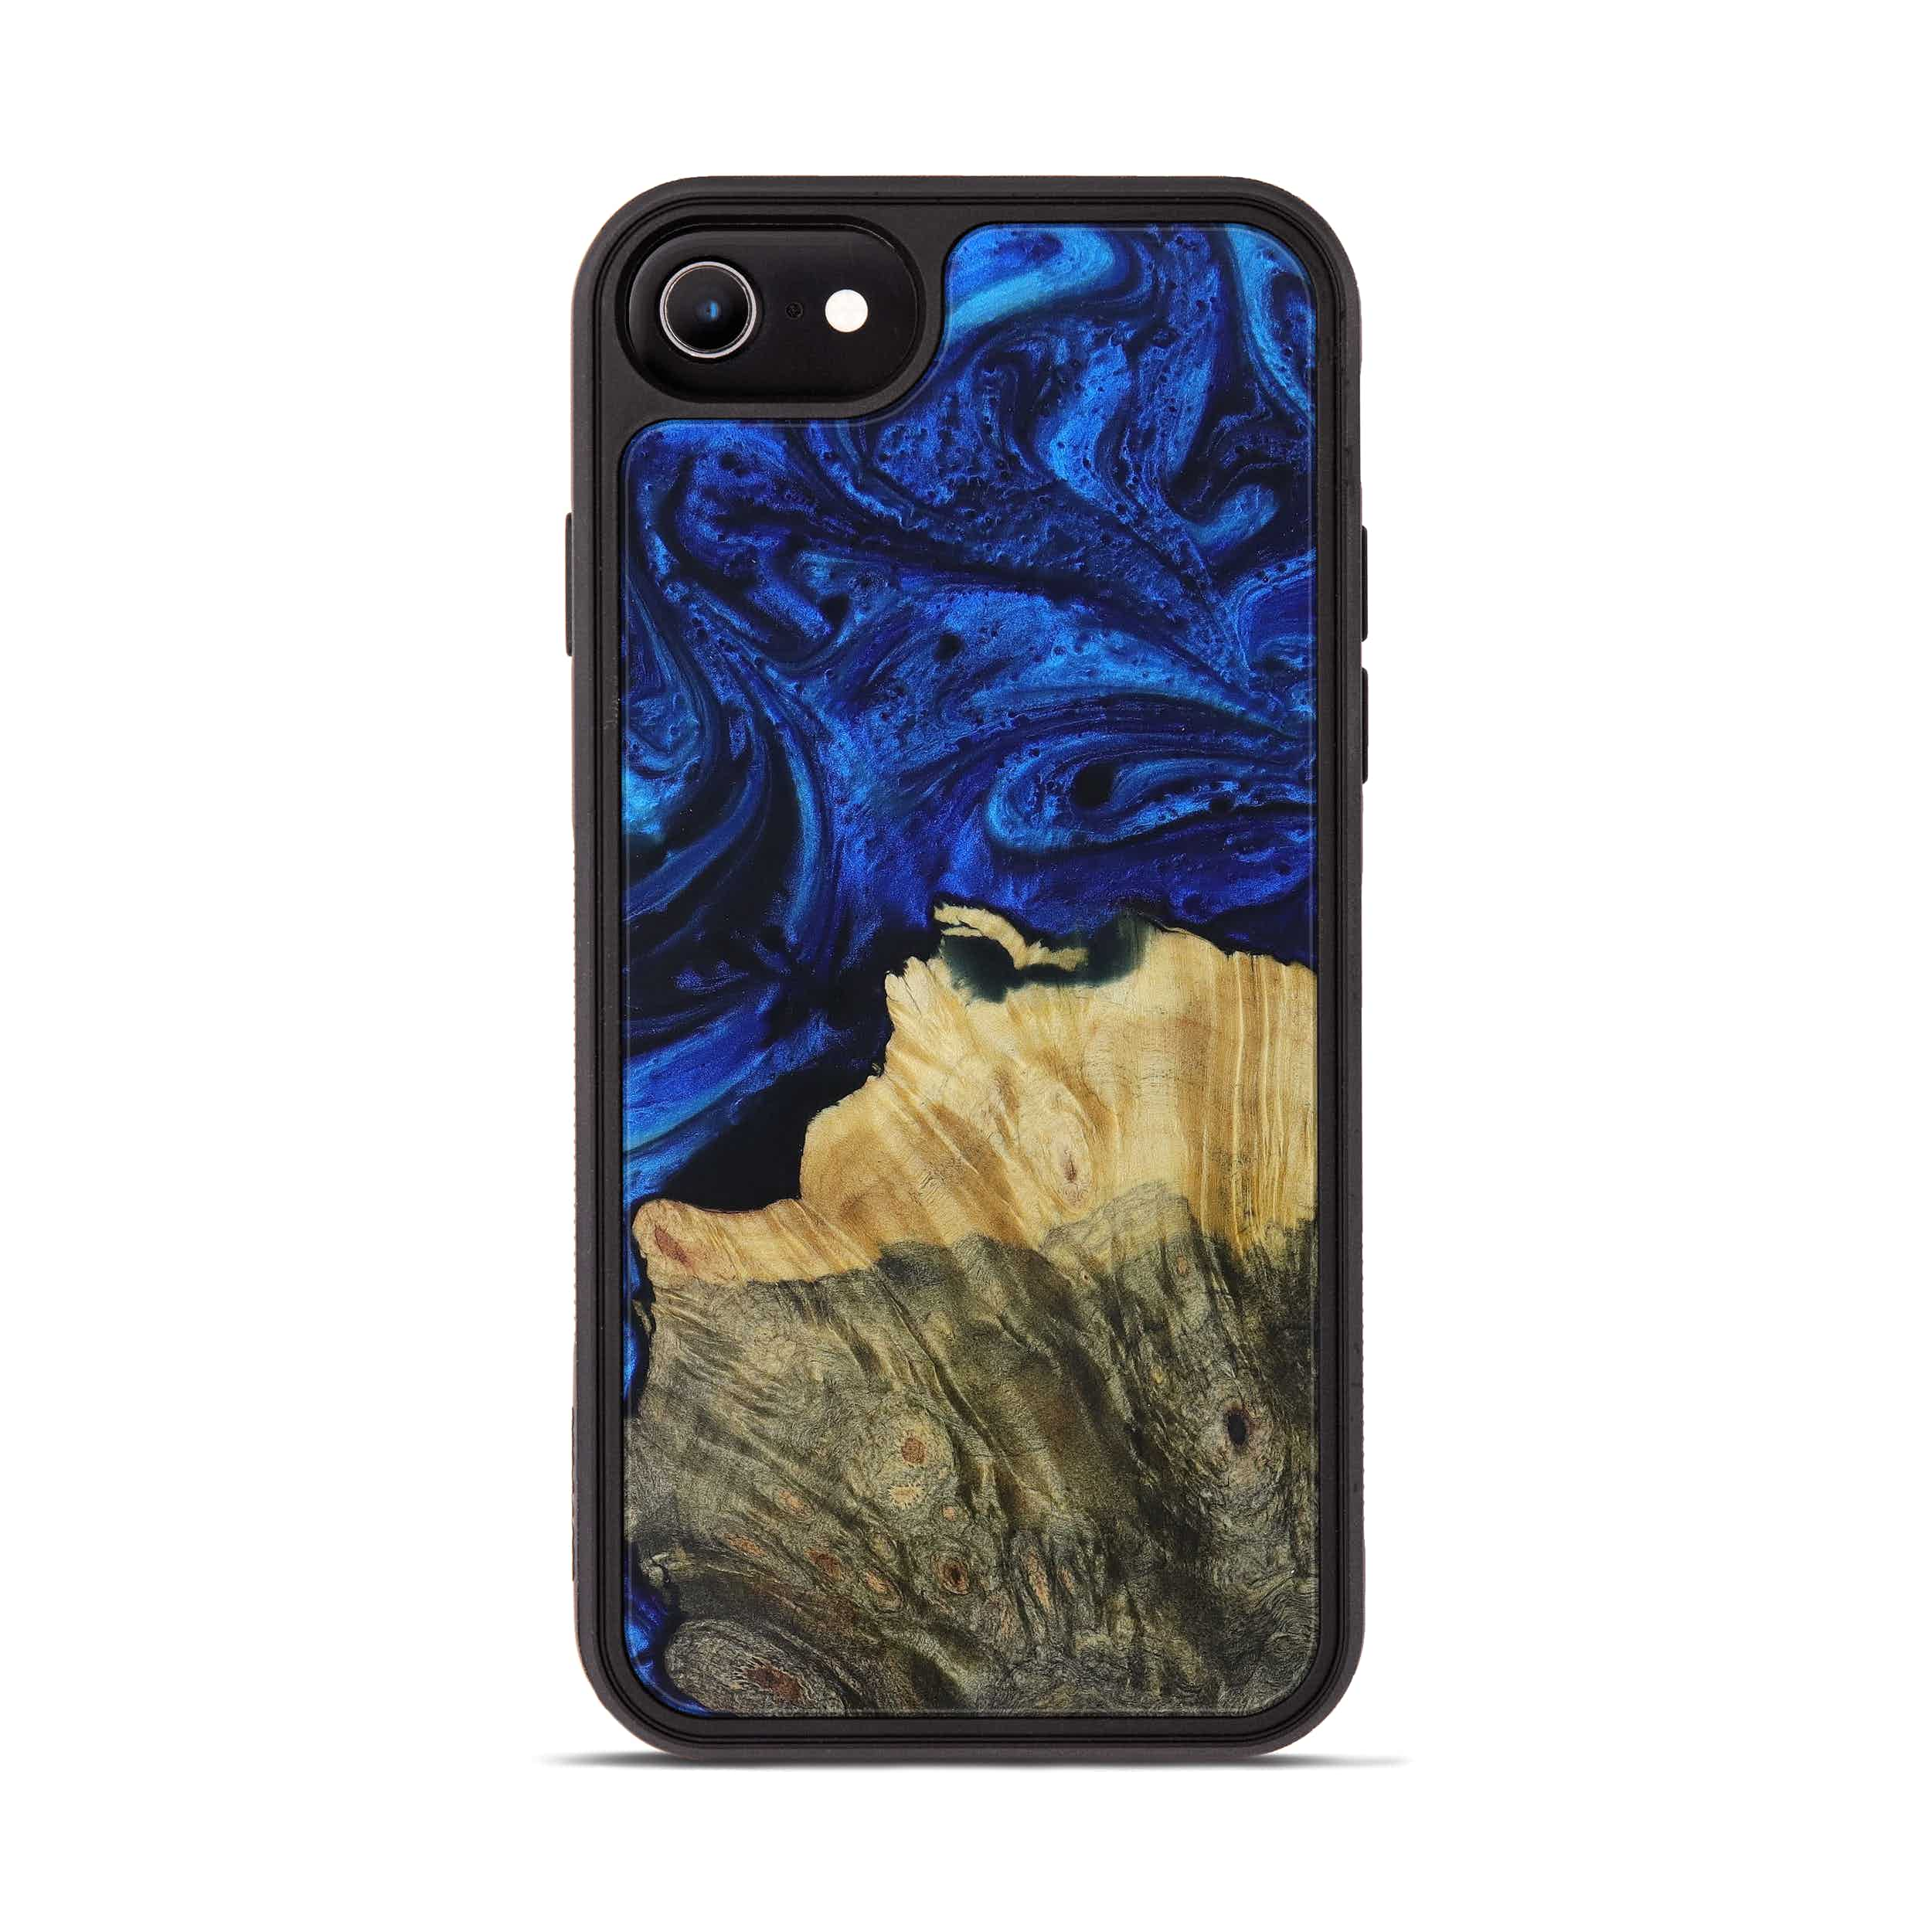 iPhone 7 Wood+Resin Phone Case - Luciano (Dark Blue, 399826)